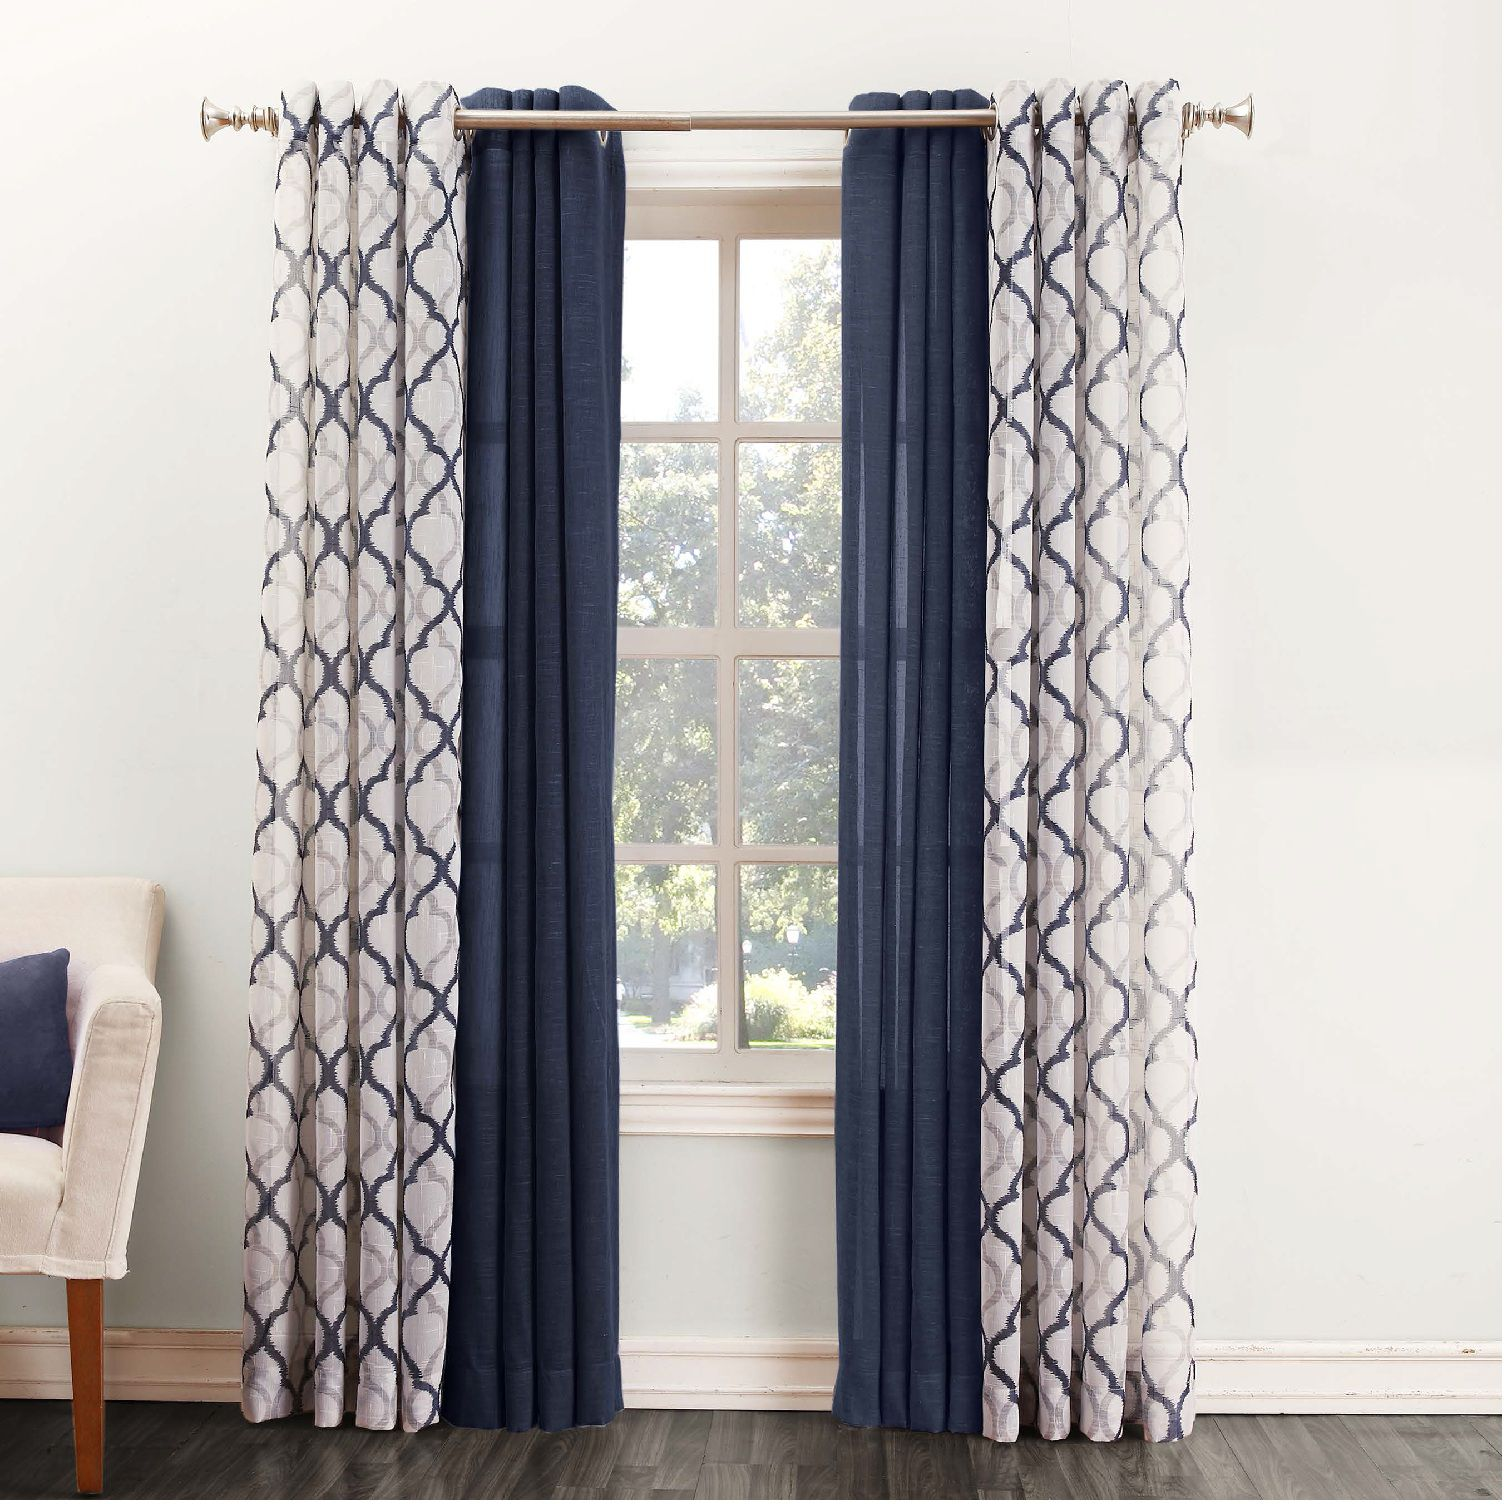 sonoma goods for life ayden u0026 lona curtains